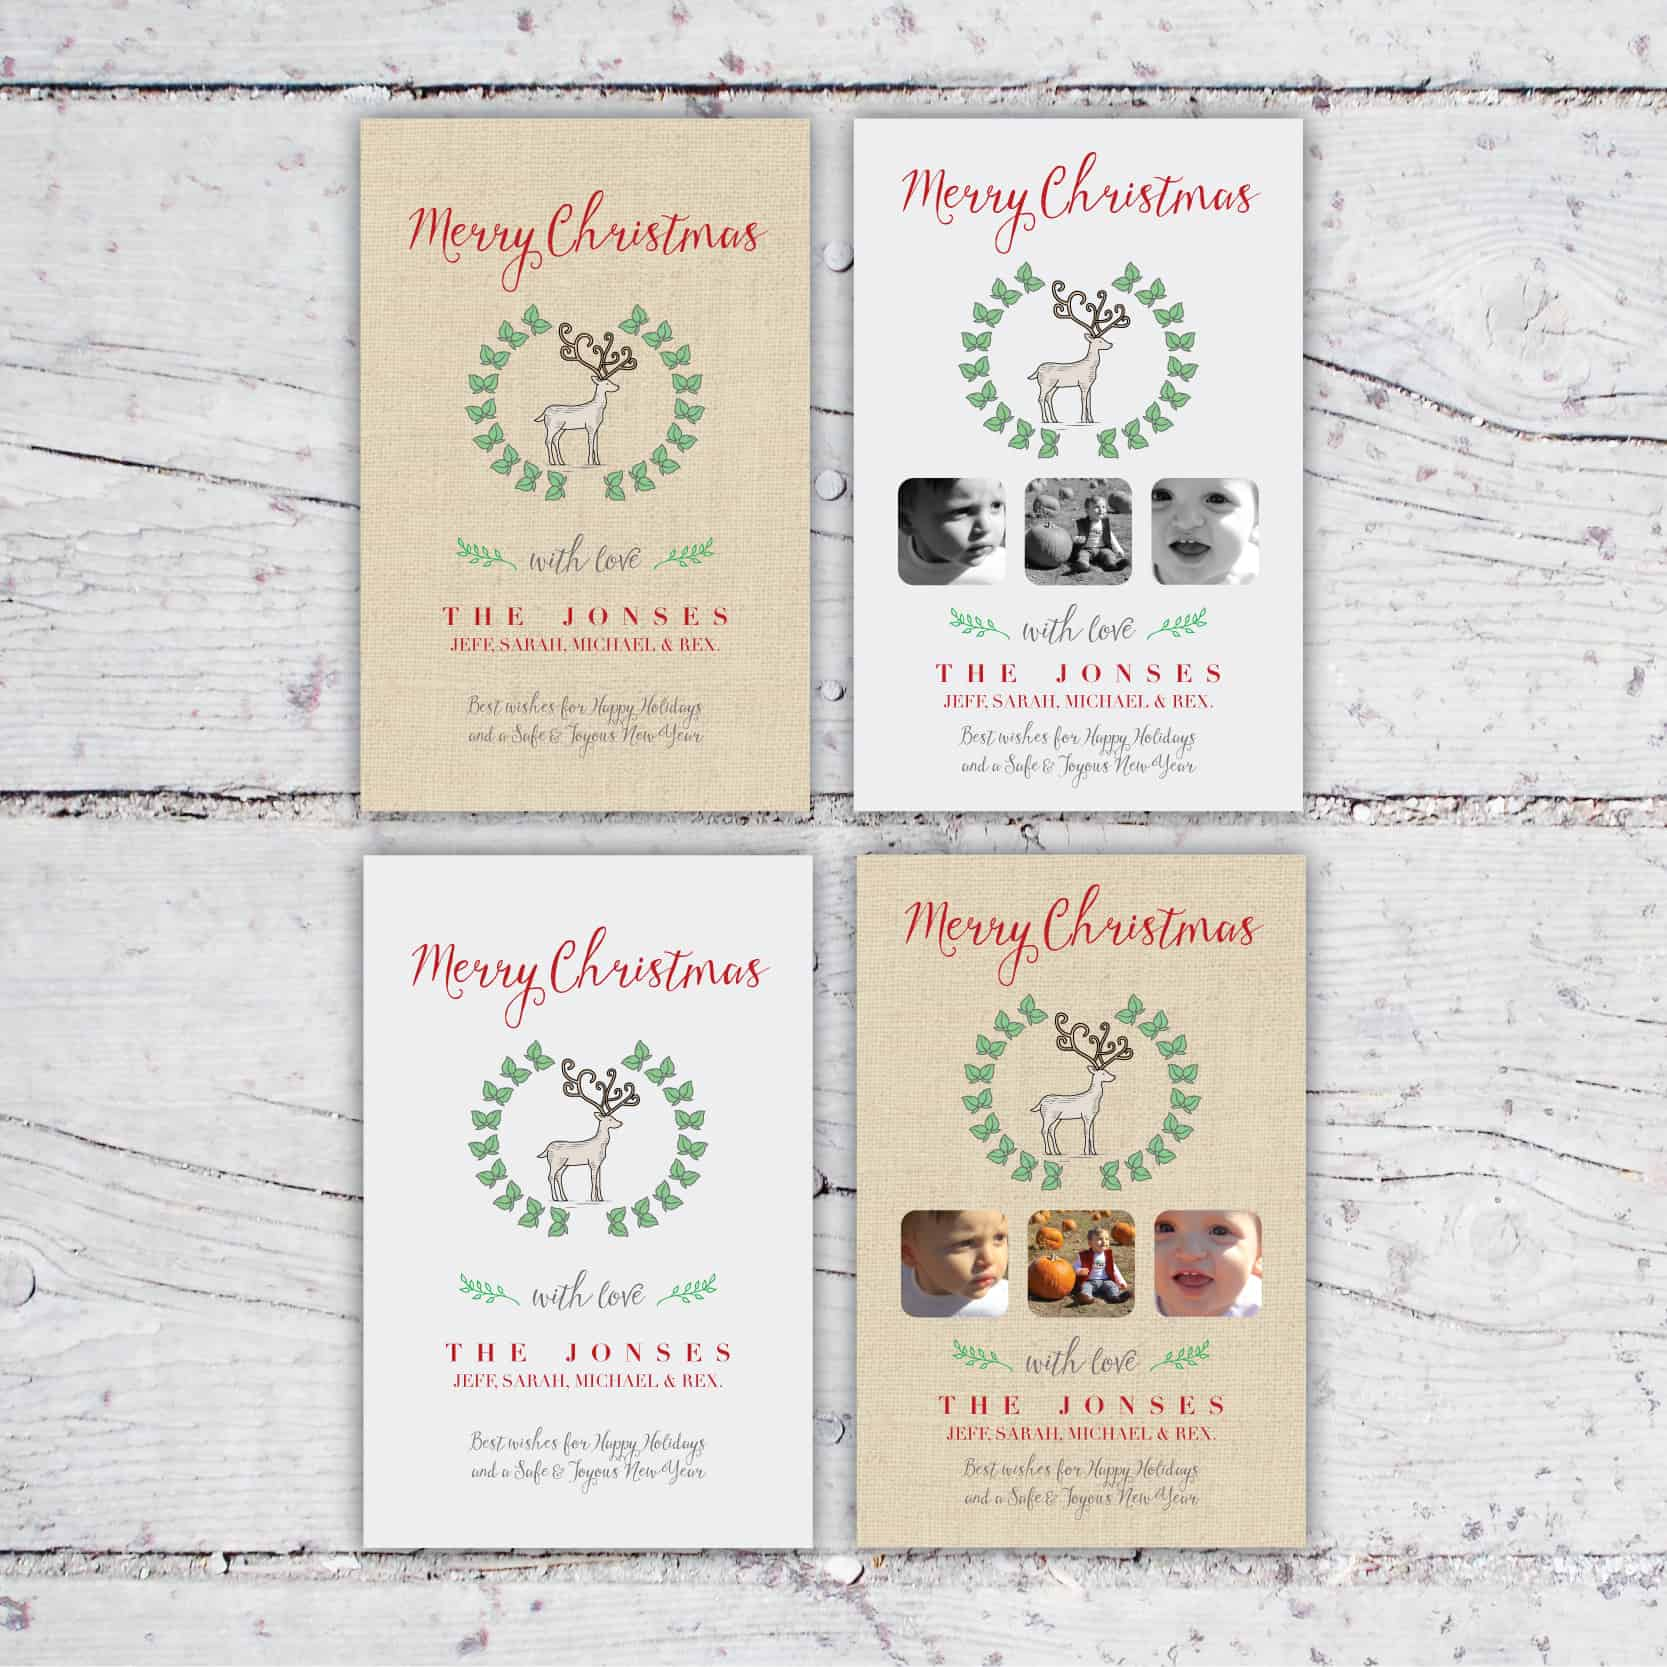 Rustic Reindeer Christmas Cards | Burlap or Gray Holiday Card | Photo Collage Christmas Cards | Rustic Chic Holiday Card | 5x7 | Create&Capture